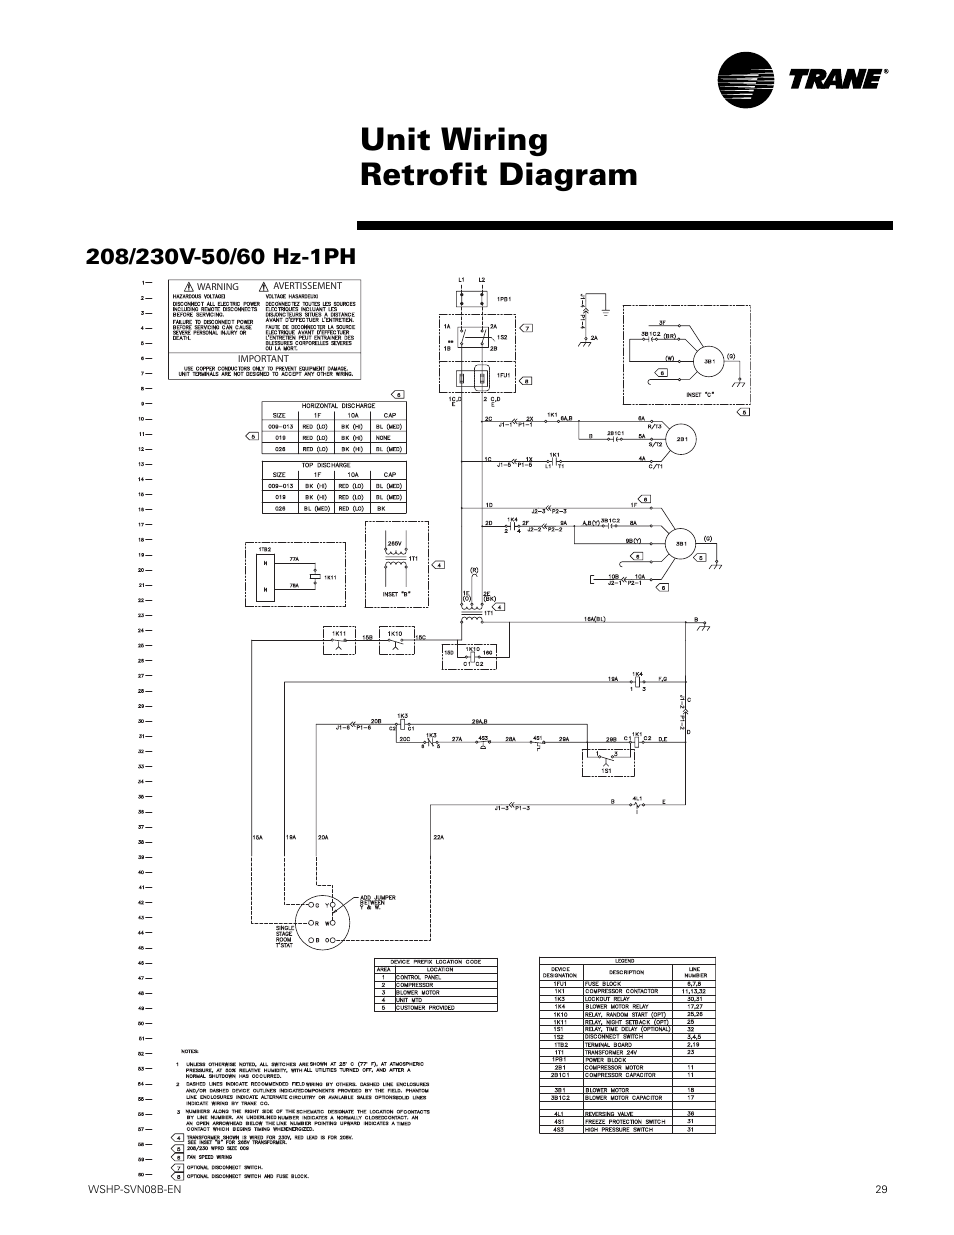 Wiring Diagrams  Unit Wiring Retrofit Diagram  Wshp